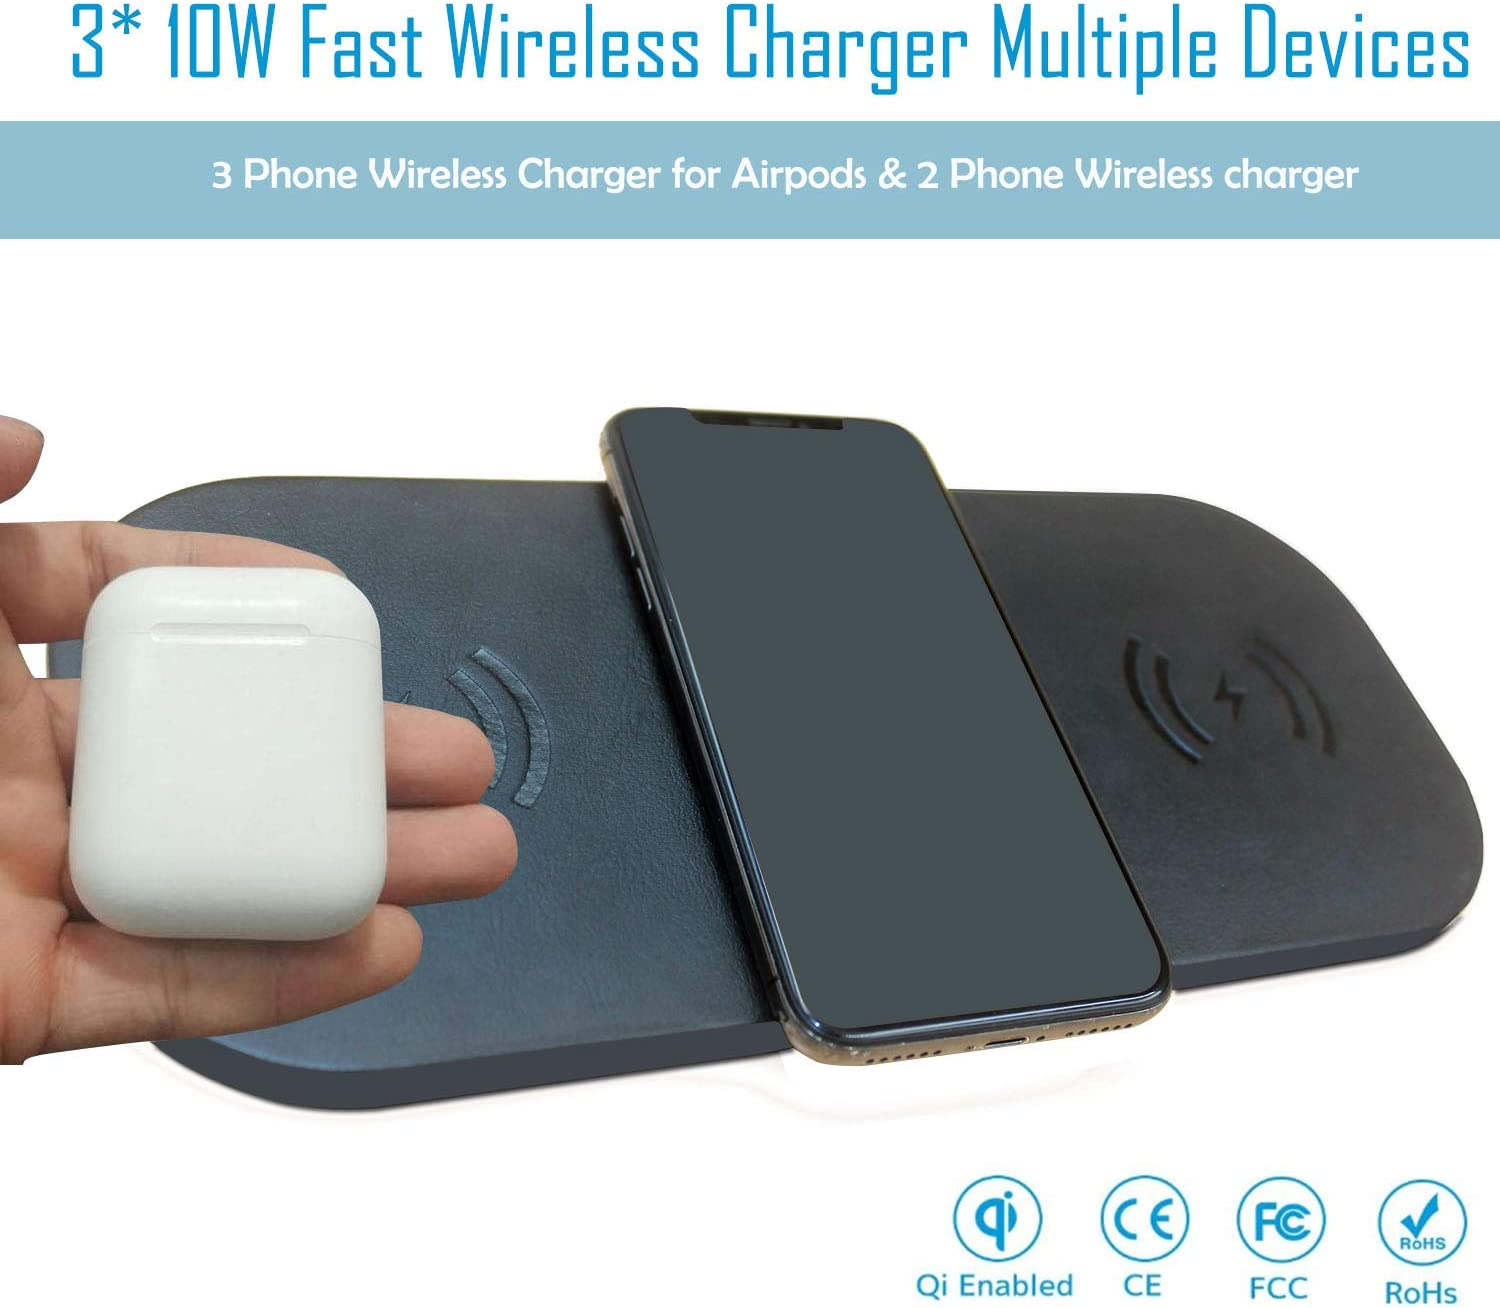 Qi Fast Wireless Charging Pad for iPhone 11//11 Pro//11 Pro Max//XS Max Samsung Galaxy Note 10//Note 10+//S10 New AirPods 10W Triple Wireless Charger Station 36W Adapter Included